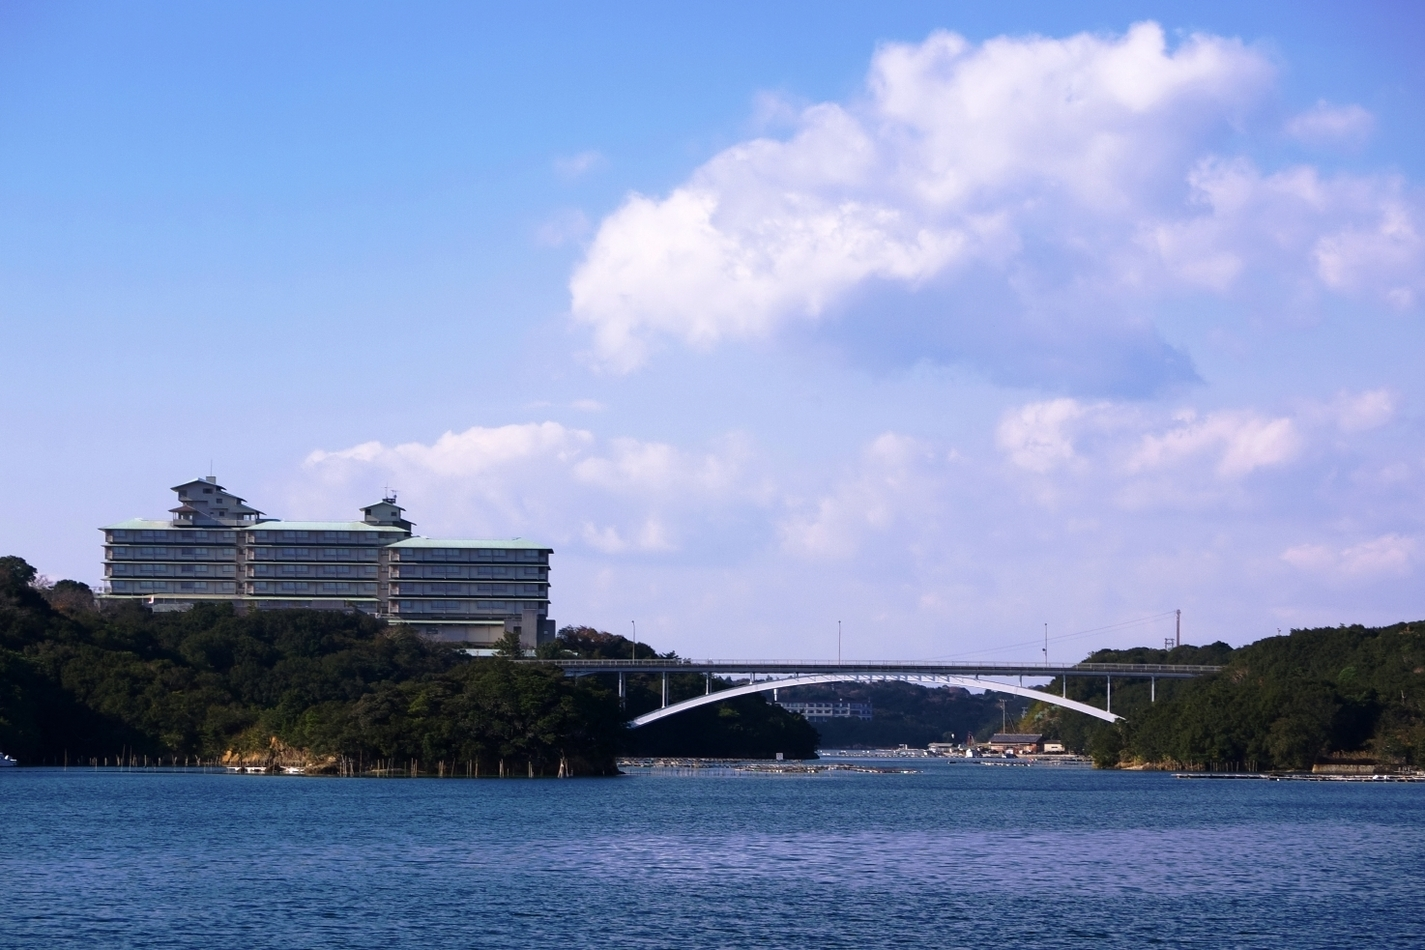 Kashikojima Ohashi Bridge